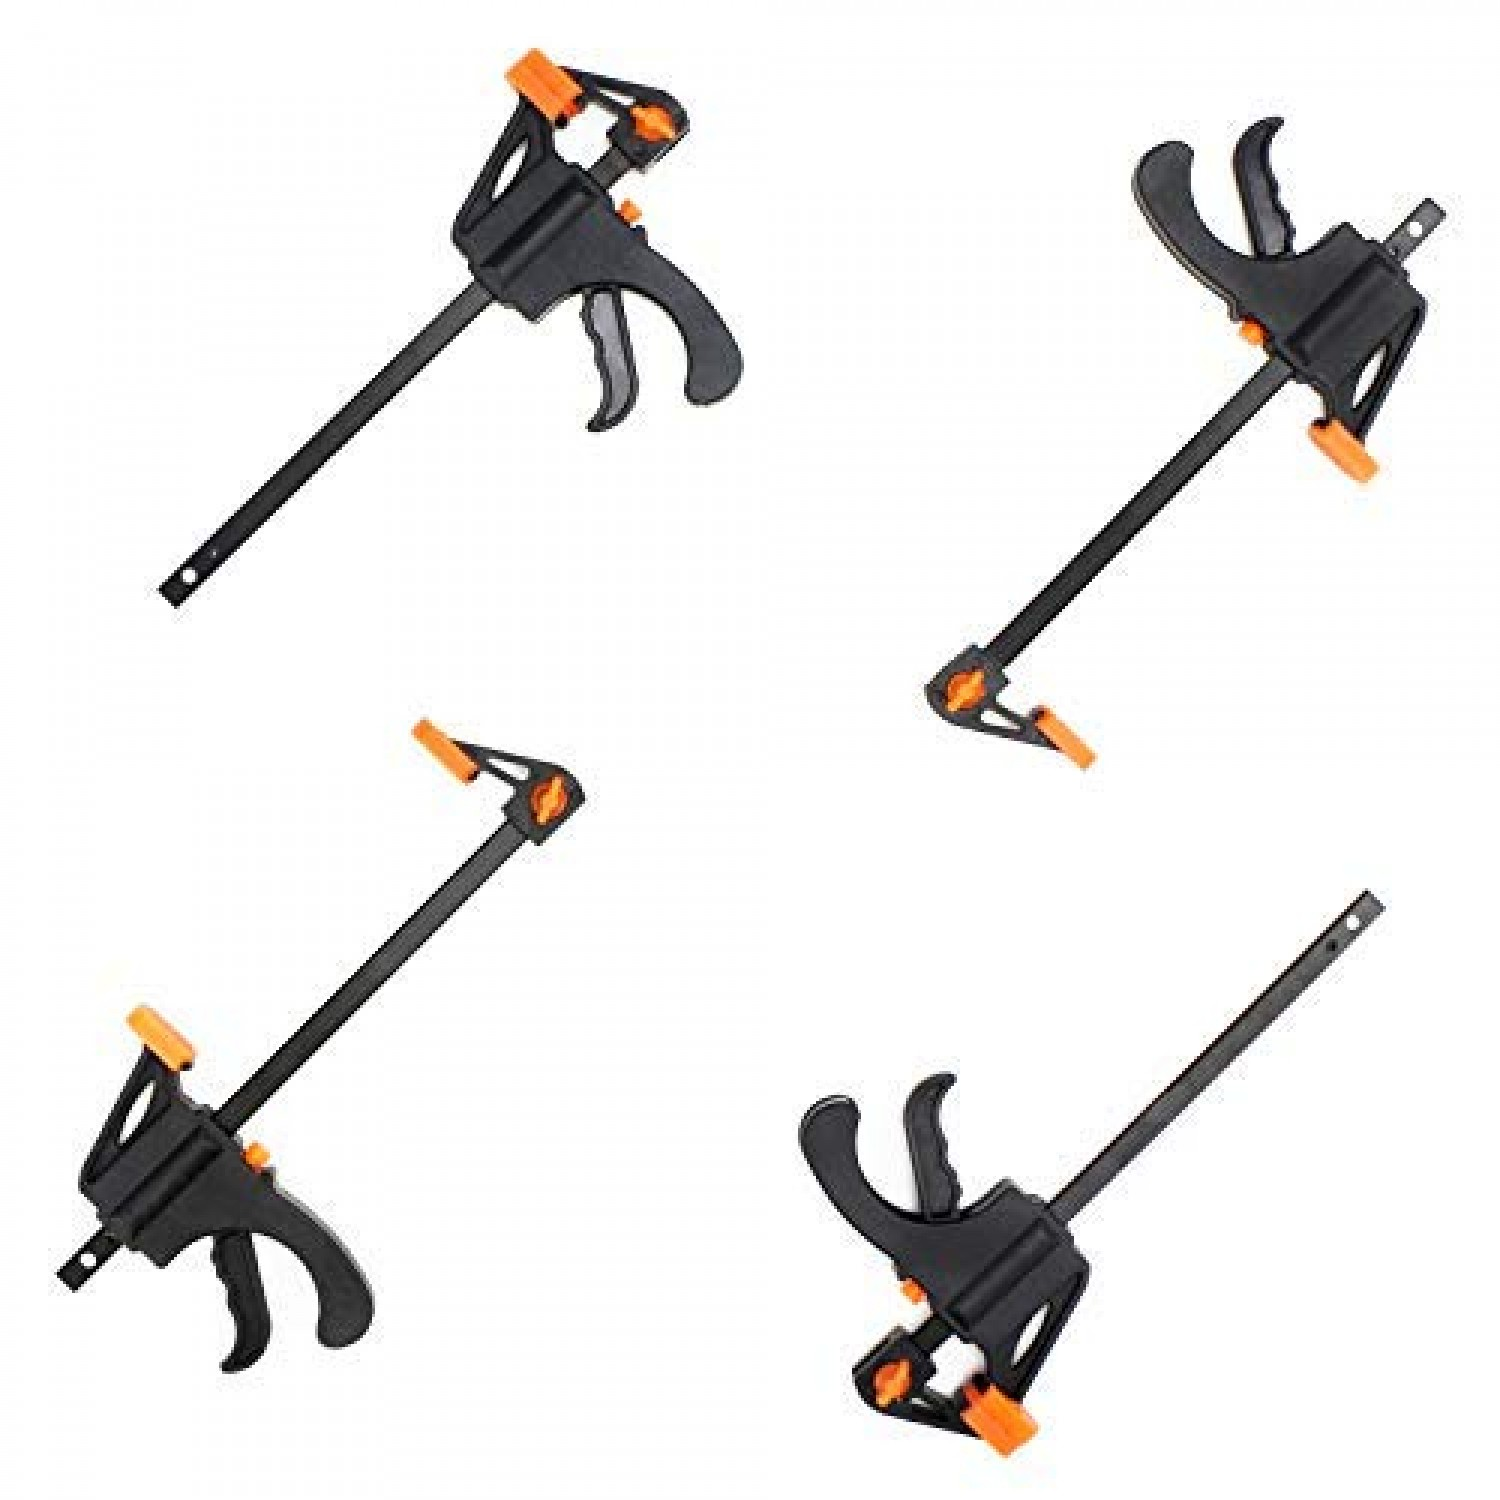 Collectibles Collectible Tools Hardware Locks Collectibles Orange Adjustable 4 F Woodworking Clip Quick Grip Clamps Wood Carpenter Tool Collectible Tools Zsco Iq